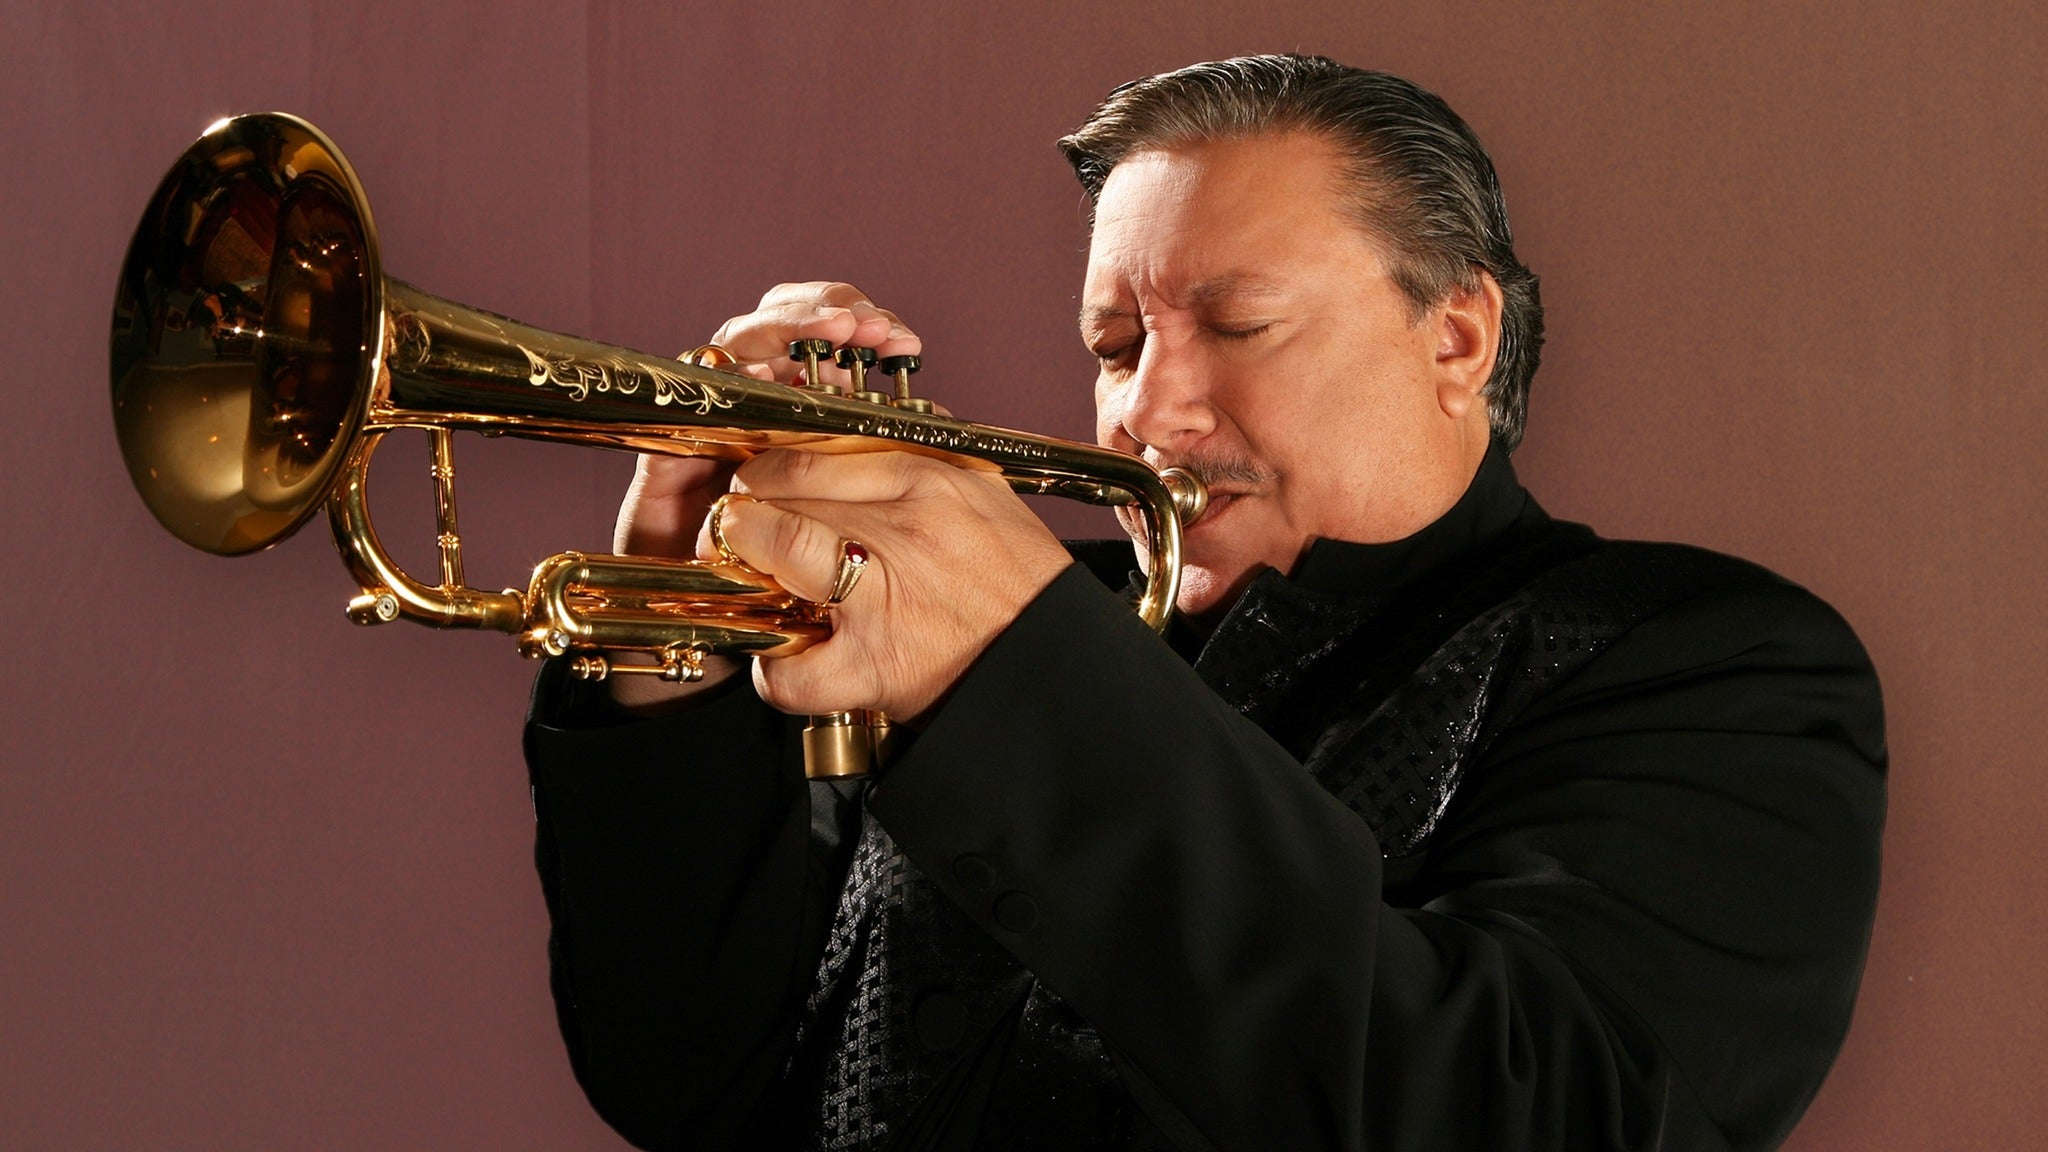 Arturo Sandoval at Catalina Bar & Grill